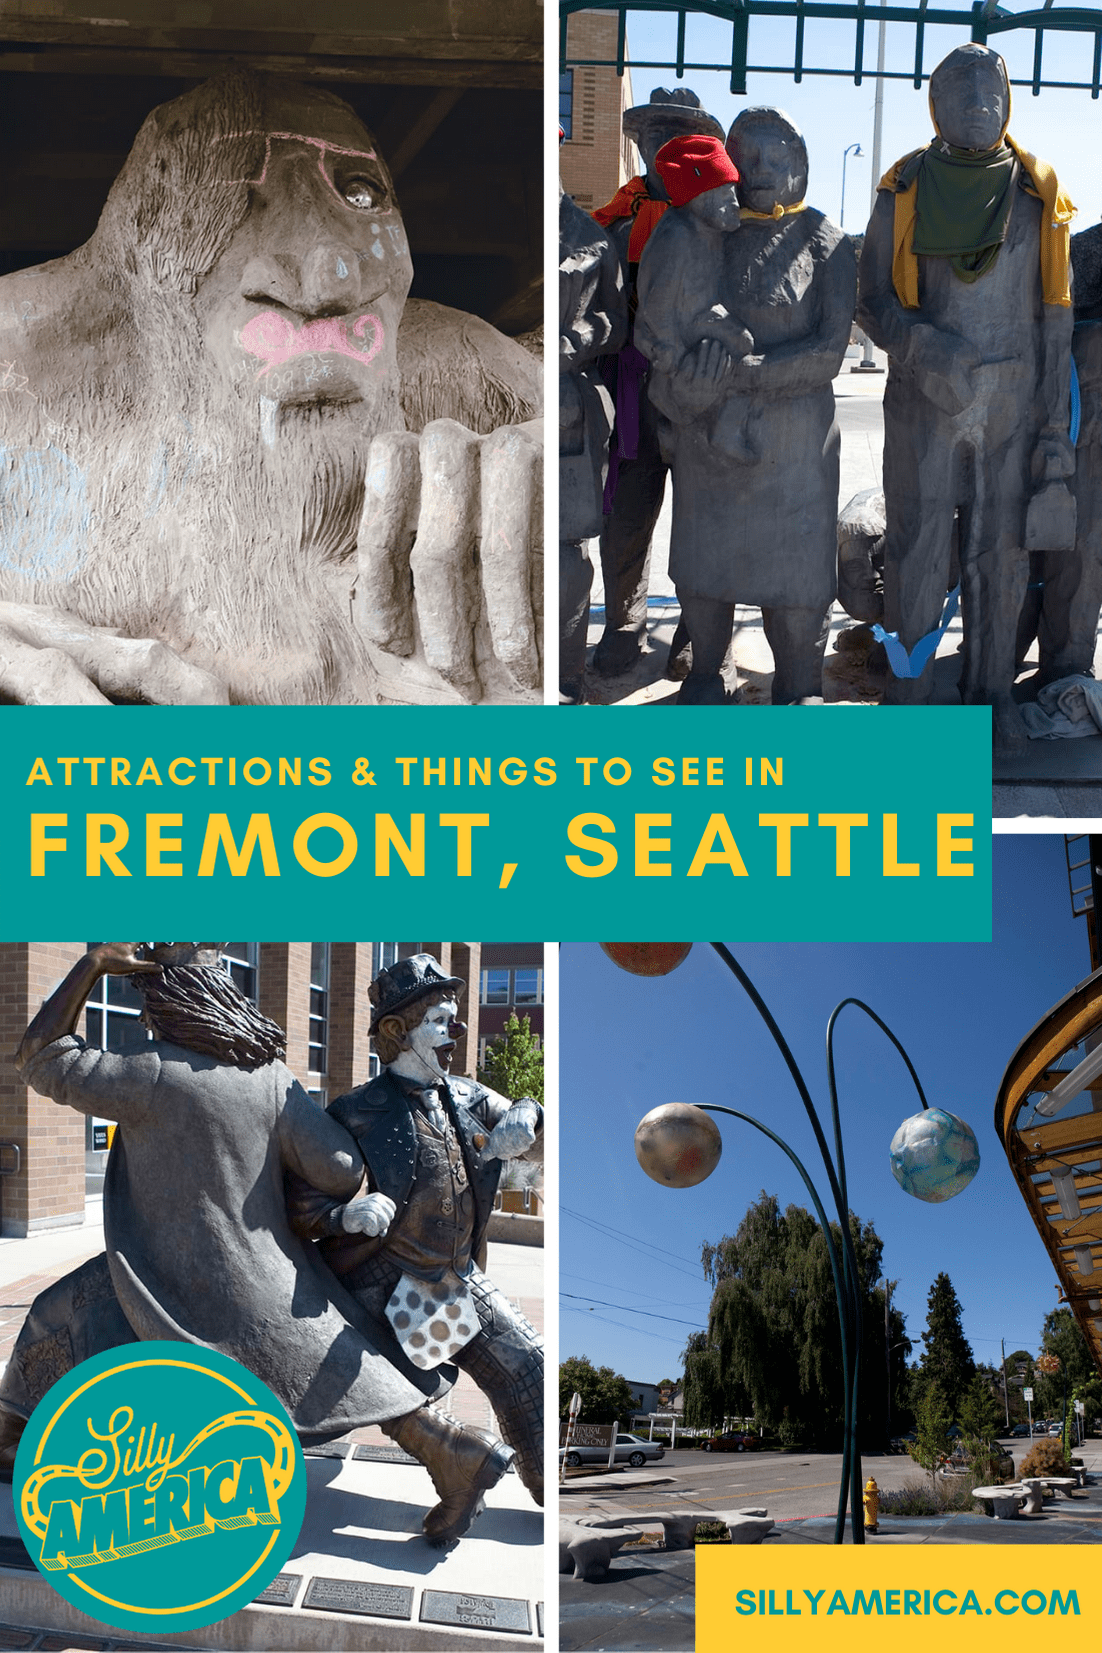 There are plenty of weird, wacky, and peculiar things to see in Fremont, a weird wacky and peculiar neighborhood in Seattle, Washington. Want to find all the peculiar for yourself? Follow this list of all the best attractions and things to see in Fremont, Seattle. #WashingtonRoadsideAttractions #WashingtonRoadsideAttraction #RoadsideAttractions #RoadsideAttraction #RoadTrip #WashingtonRoadTrip  #SeattleRoadTrip #SeattleRoadsideAttractions #FremontSeattle